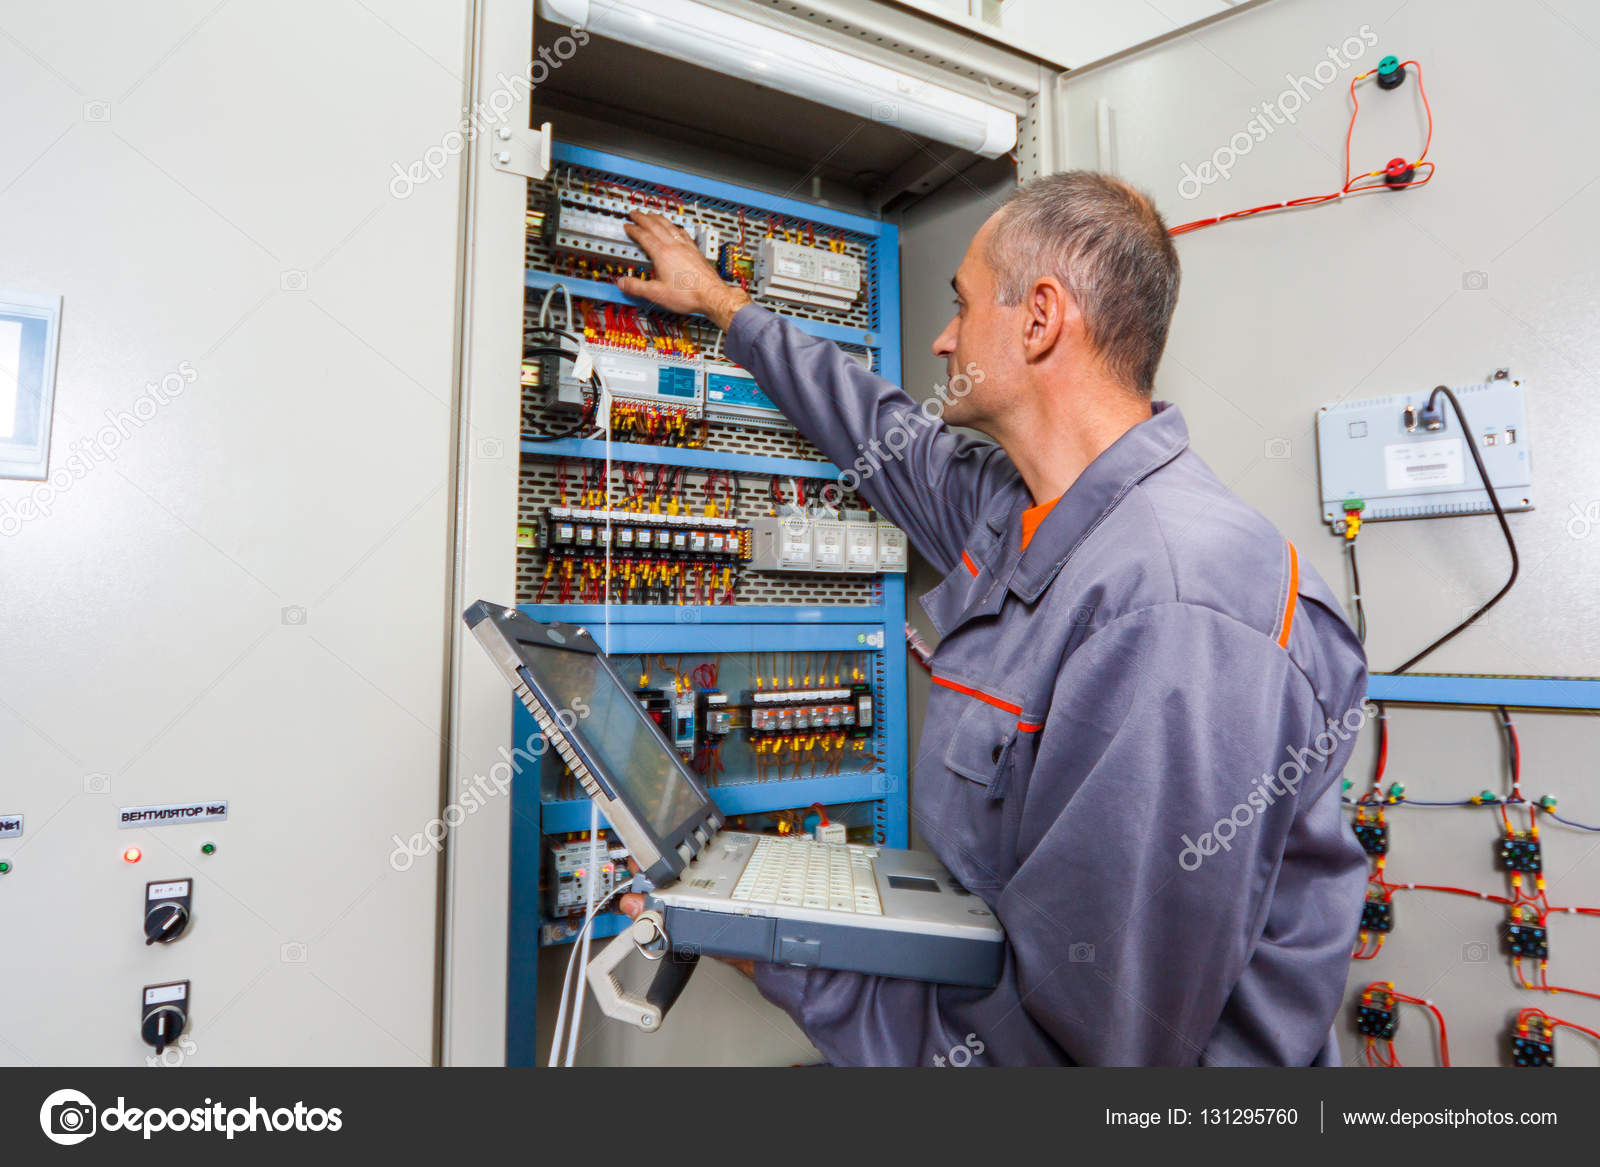 Electrician Testing Industrial Machine Builder Engineer Fuse Box Screwing Equipment In Male